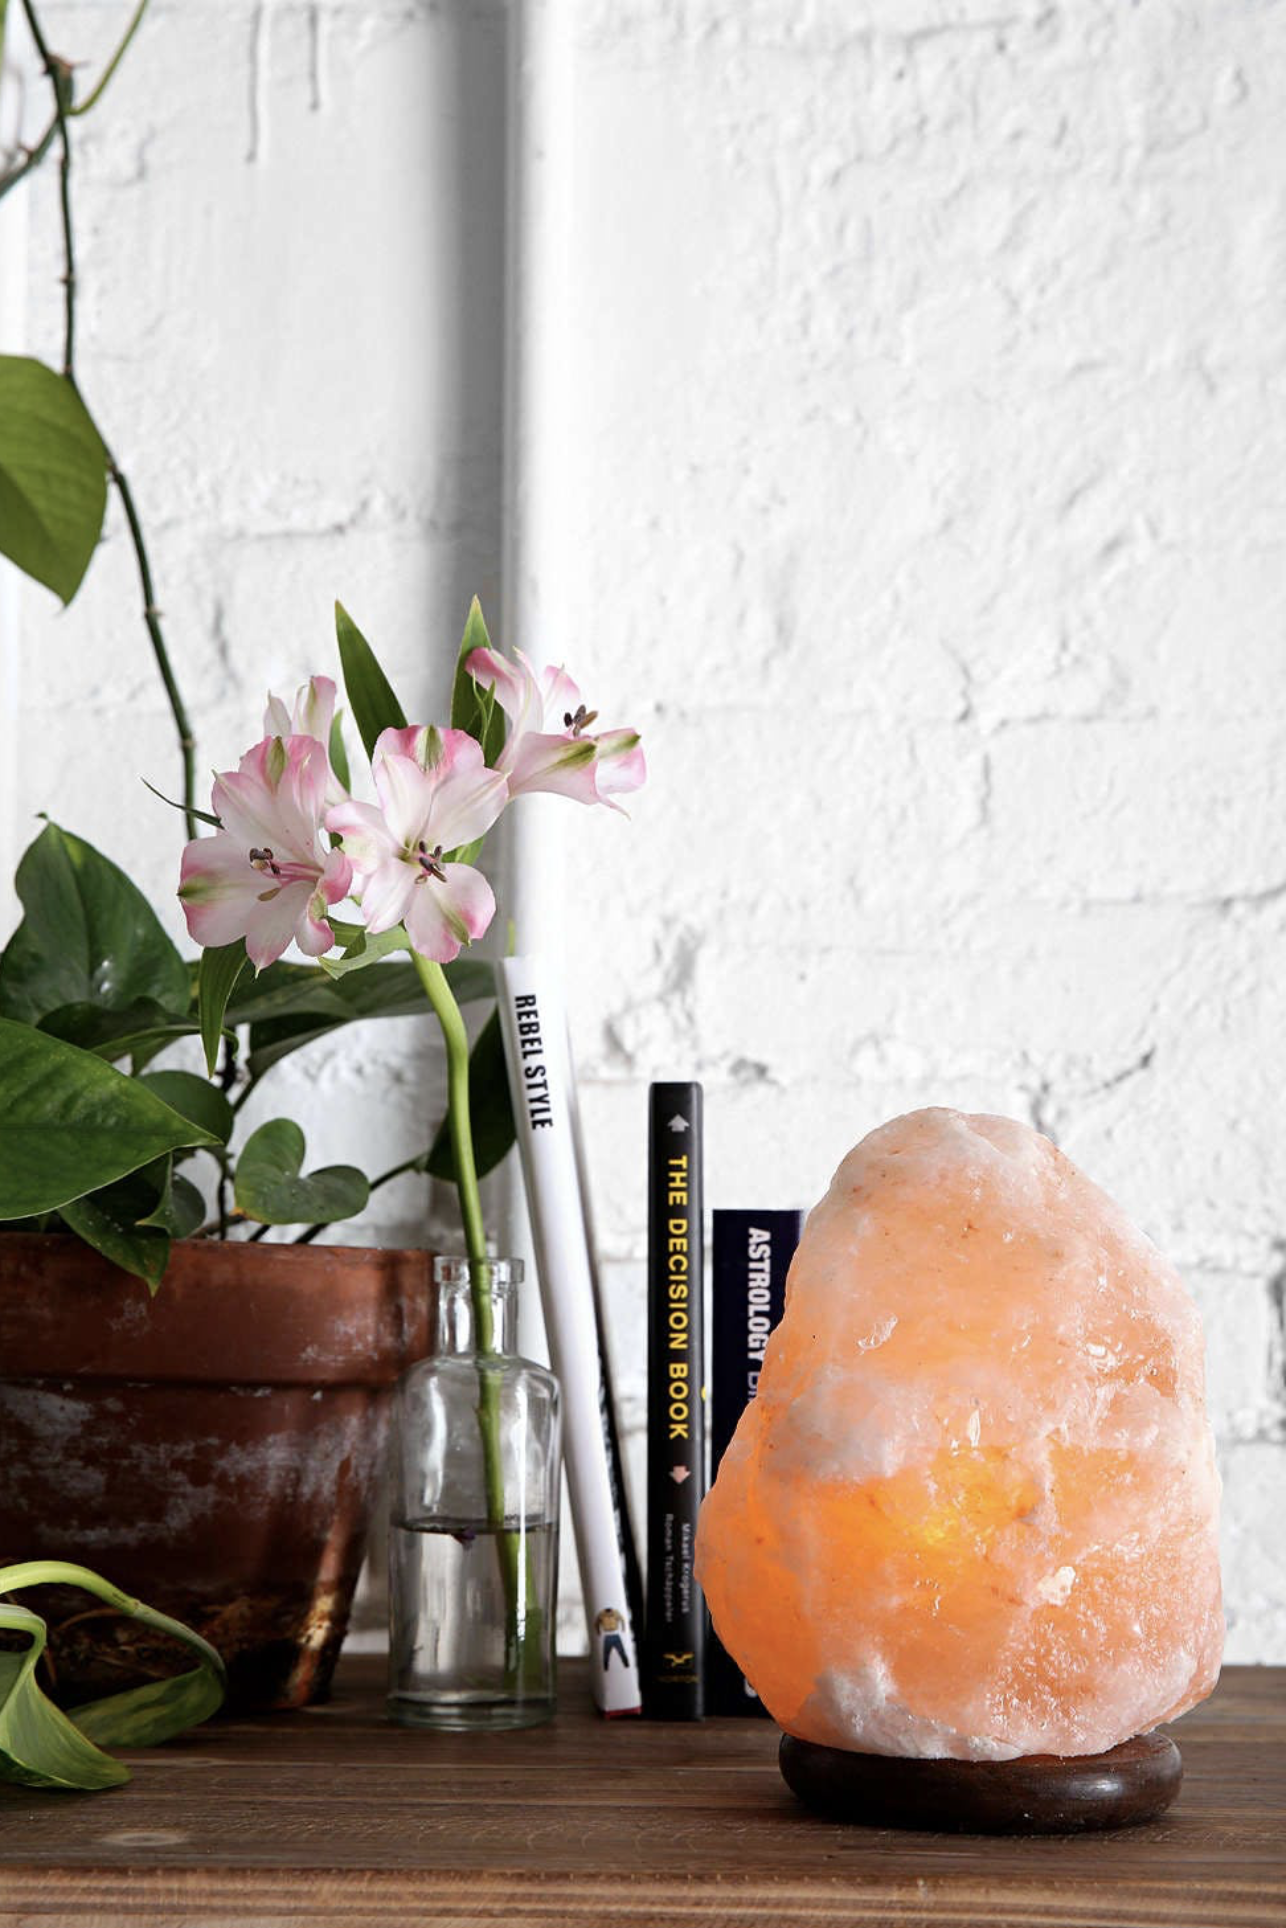 Himalayan Salt lamps - Himalayan Salt Lamps are so hot right now and another one of my favourite ways to lift the energy in a space. These beautiful lamps are able to purify and clean the air in a space by absorbing water in the air + trapping dust,pollen + pollutants. Not only can they cleanse the air and improve breathing capabilities but they remove odours too!Now my favourite thing that salt lamps do is they literally increase our energy levels! Yes, you heard right and don't we need it! Salt lamps are said to combat the positive ions that exist in our air. These positive ions really should be called negative ions ;) as they reduce the flow of blood around the body which drains our energy. But in actual fact, it is the beautiful salt lamp that produces the negative ions that are so super beneficial, and they also help neutralise the electromagnetic radiation produced by household appliances. Electromagnetics are known to cause fatigue and interfere with our natural healthy rhythms and cycles affecting sleep and concentration. There is so much exciting information available on the benefits of salt lamps, for more info head to http://negativeionizers.net/negative-ions-benefits/ .